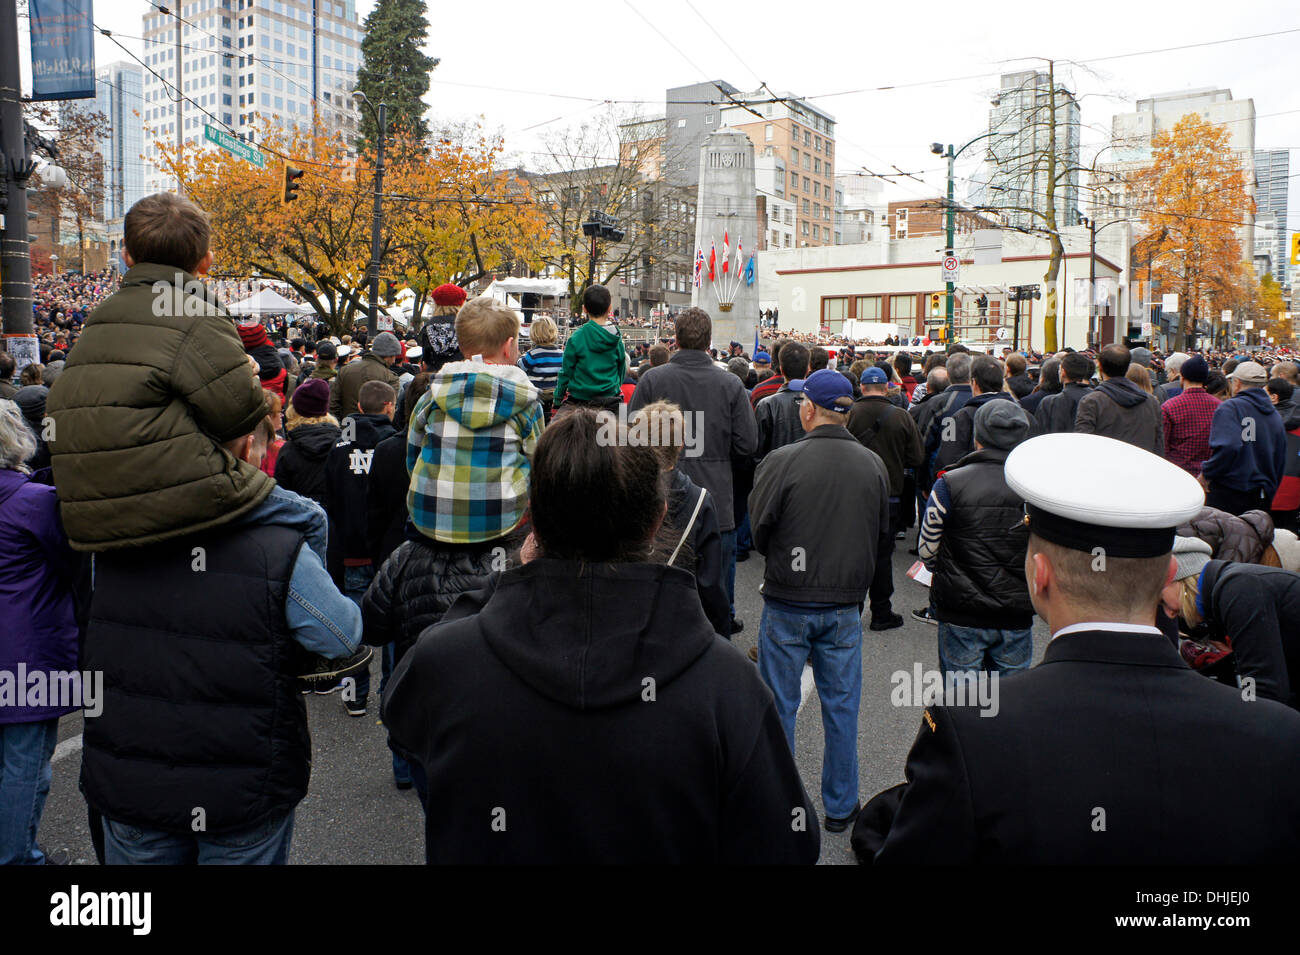 Crowds of people attend Remembrance Day ceremonies in Victory Square in downtown Vancouver, British Columbia, Canada - Stock Image